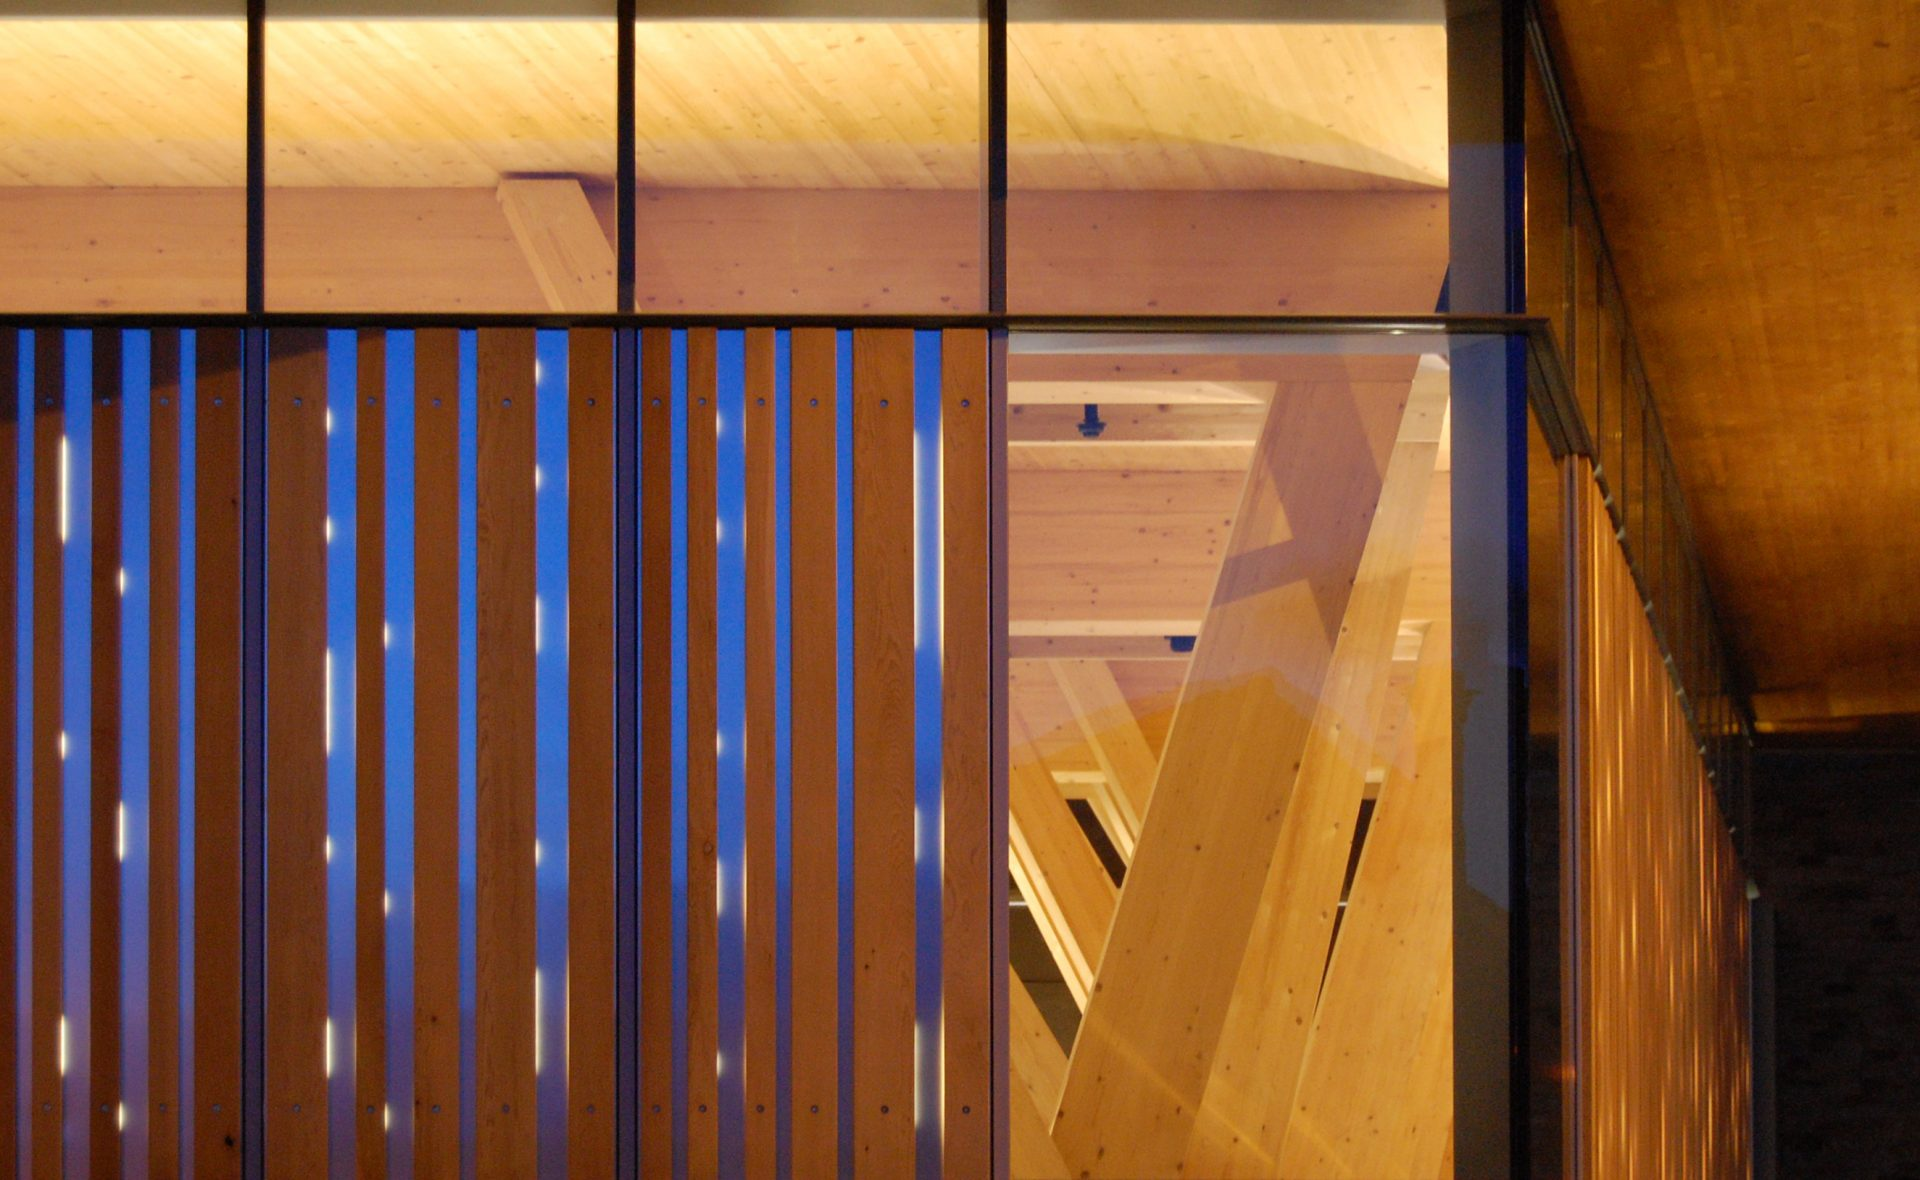 HCA Arts Space timber cladding and structure detail at night